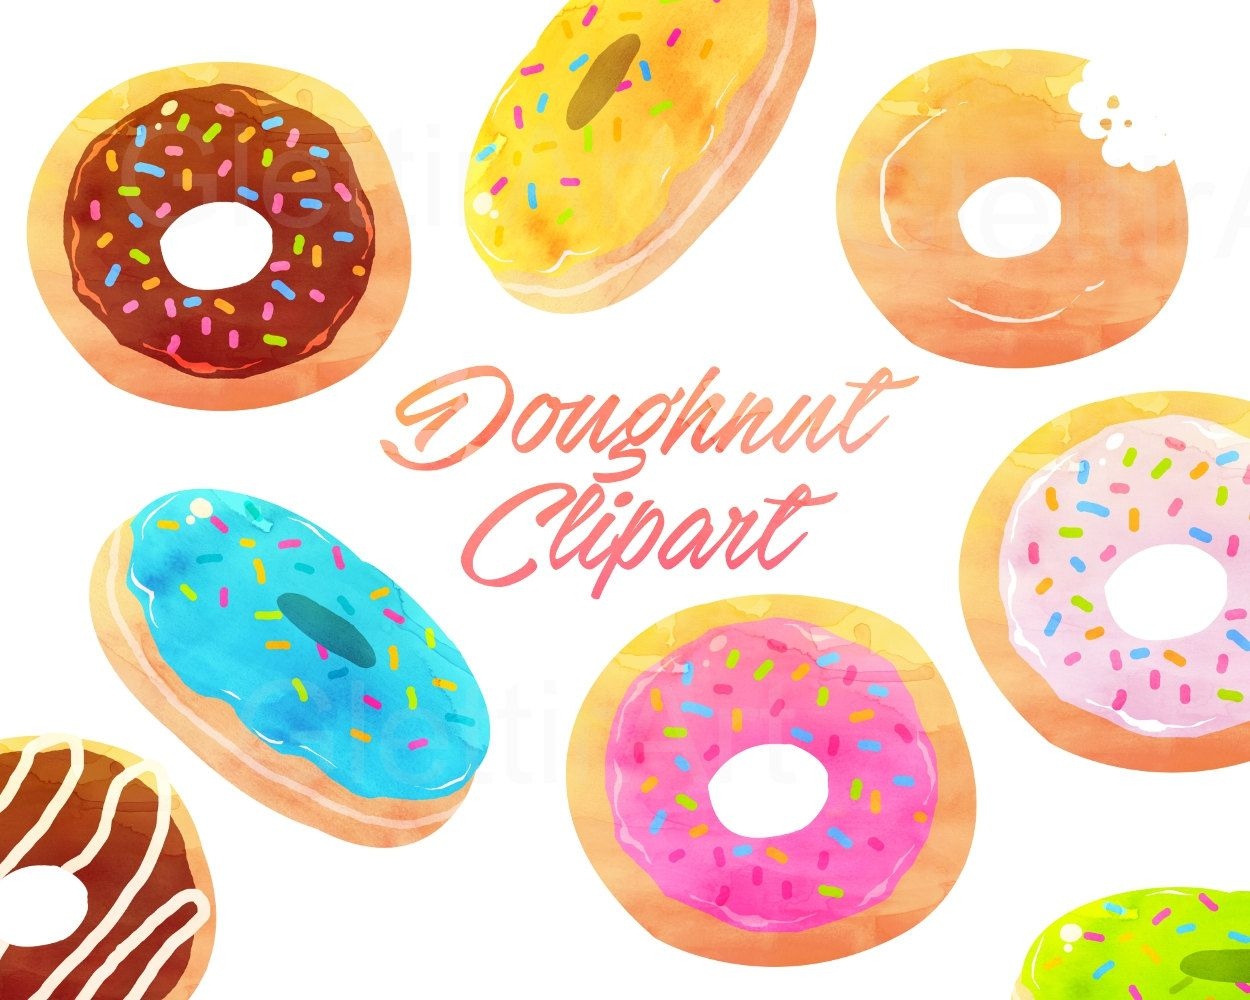 medium resolution of donut clipart doughnut clipart dessert clipart for personal and commercial use instant download scrapbooking planner stickers by glettirart on etsy